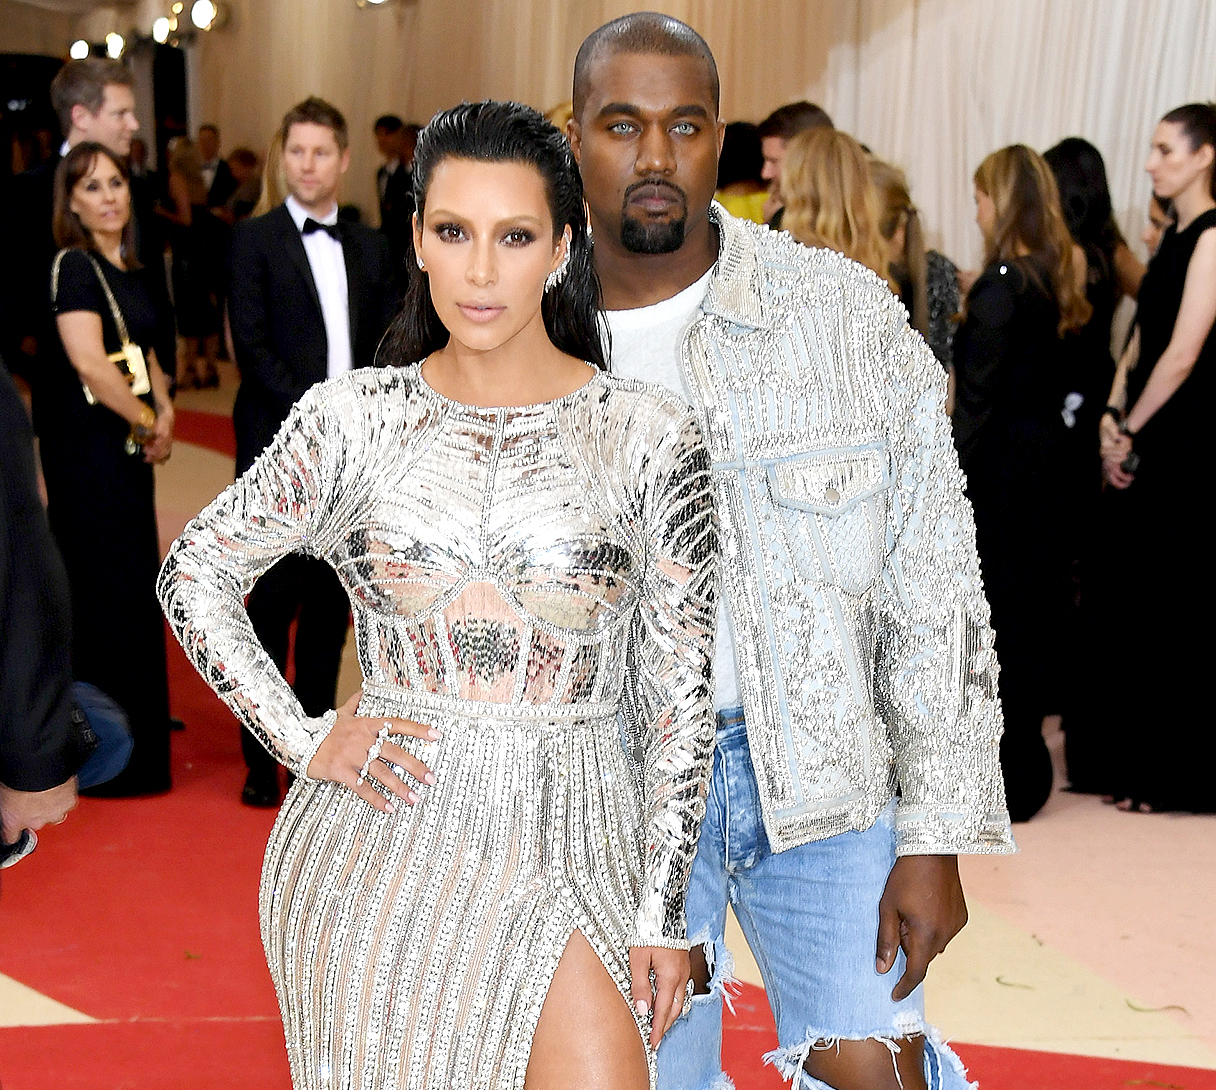 Kim Kardashian West (L) and Kanye West